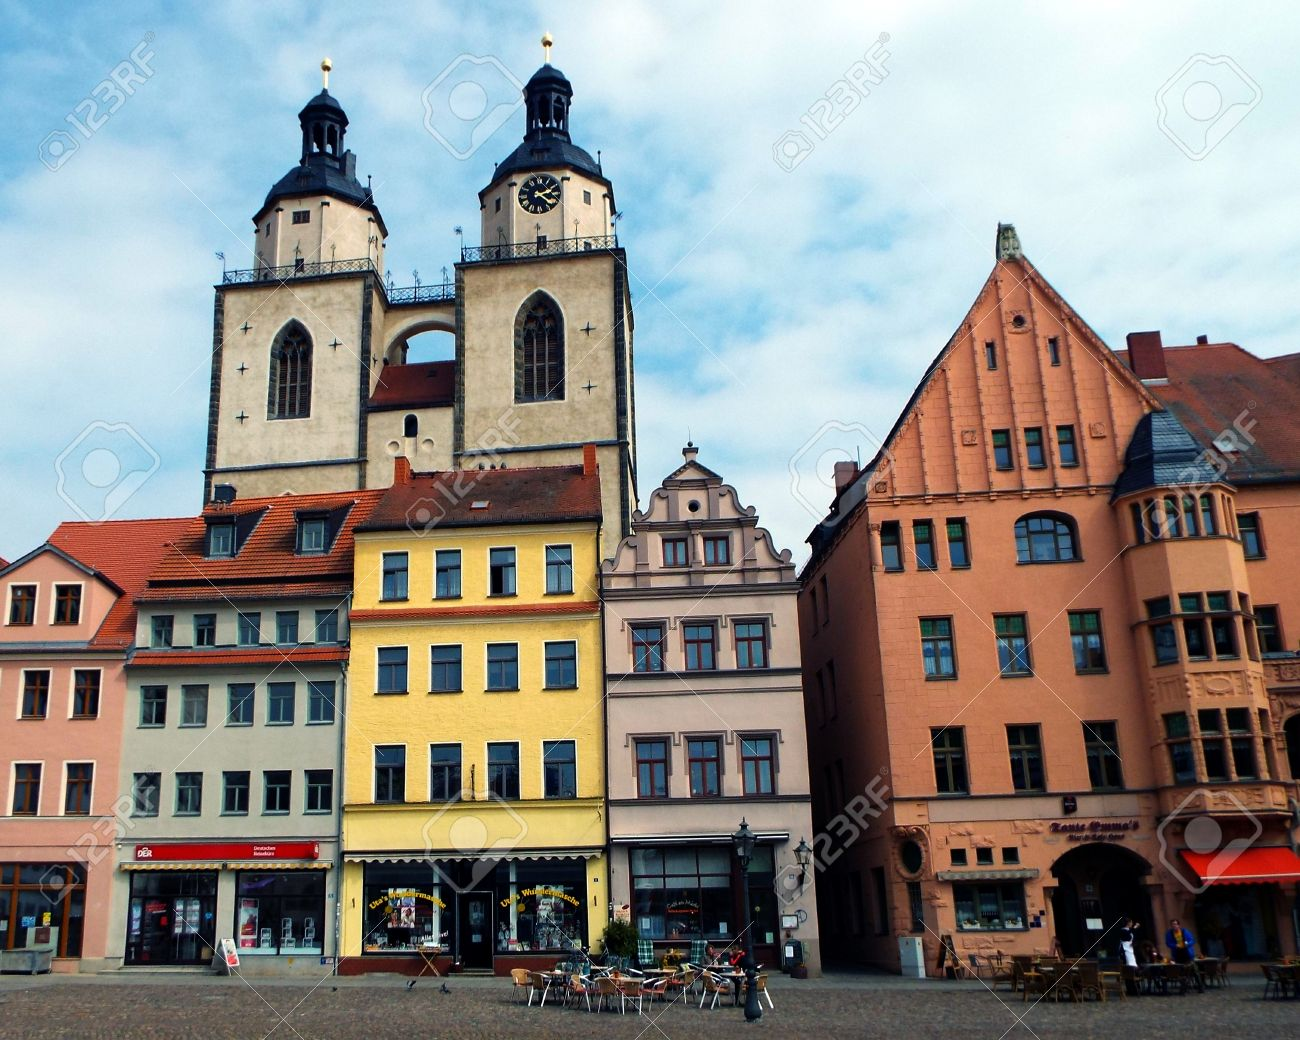 Decorating martin luther church door photos : Towers Of St. Mary's Church, Wittenberg, Germany 04.12.2016 - At ...